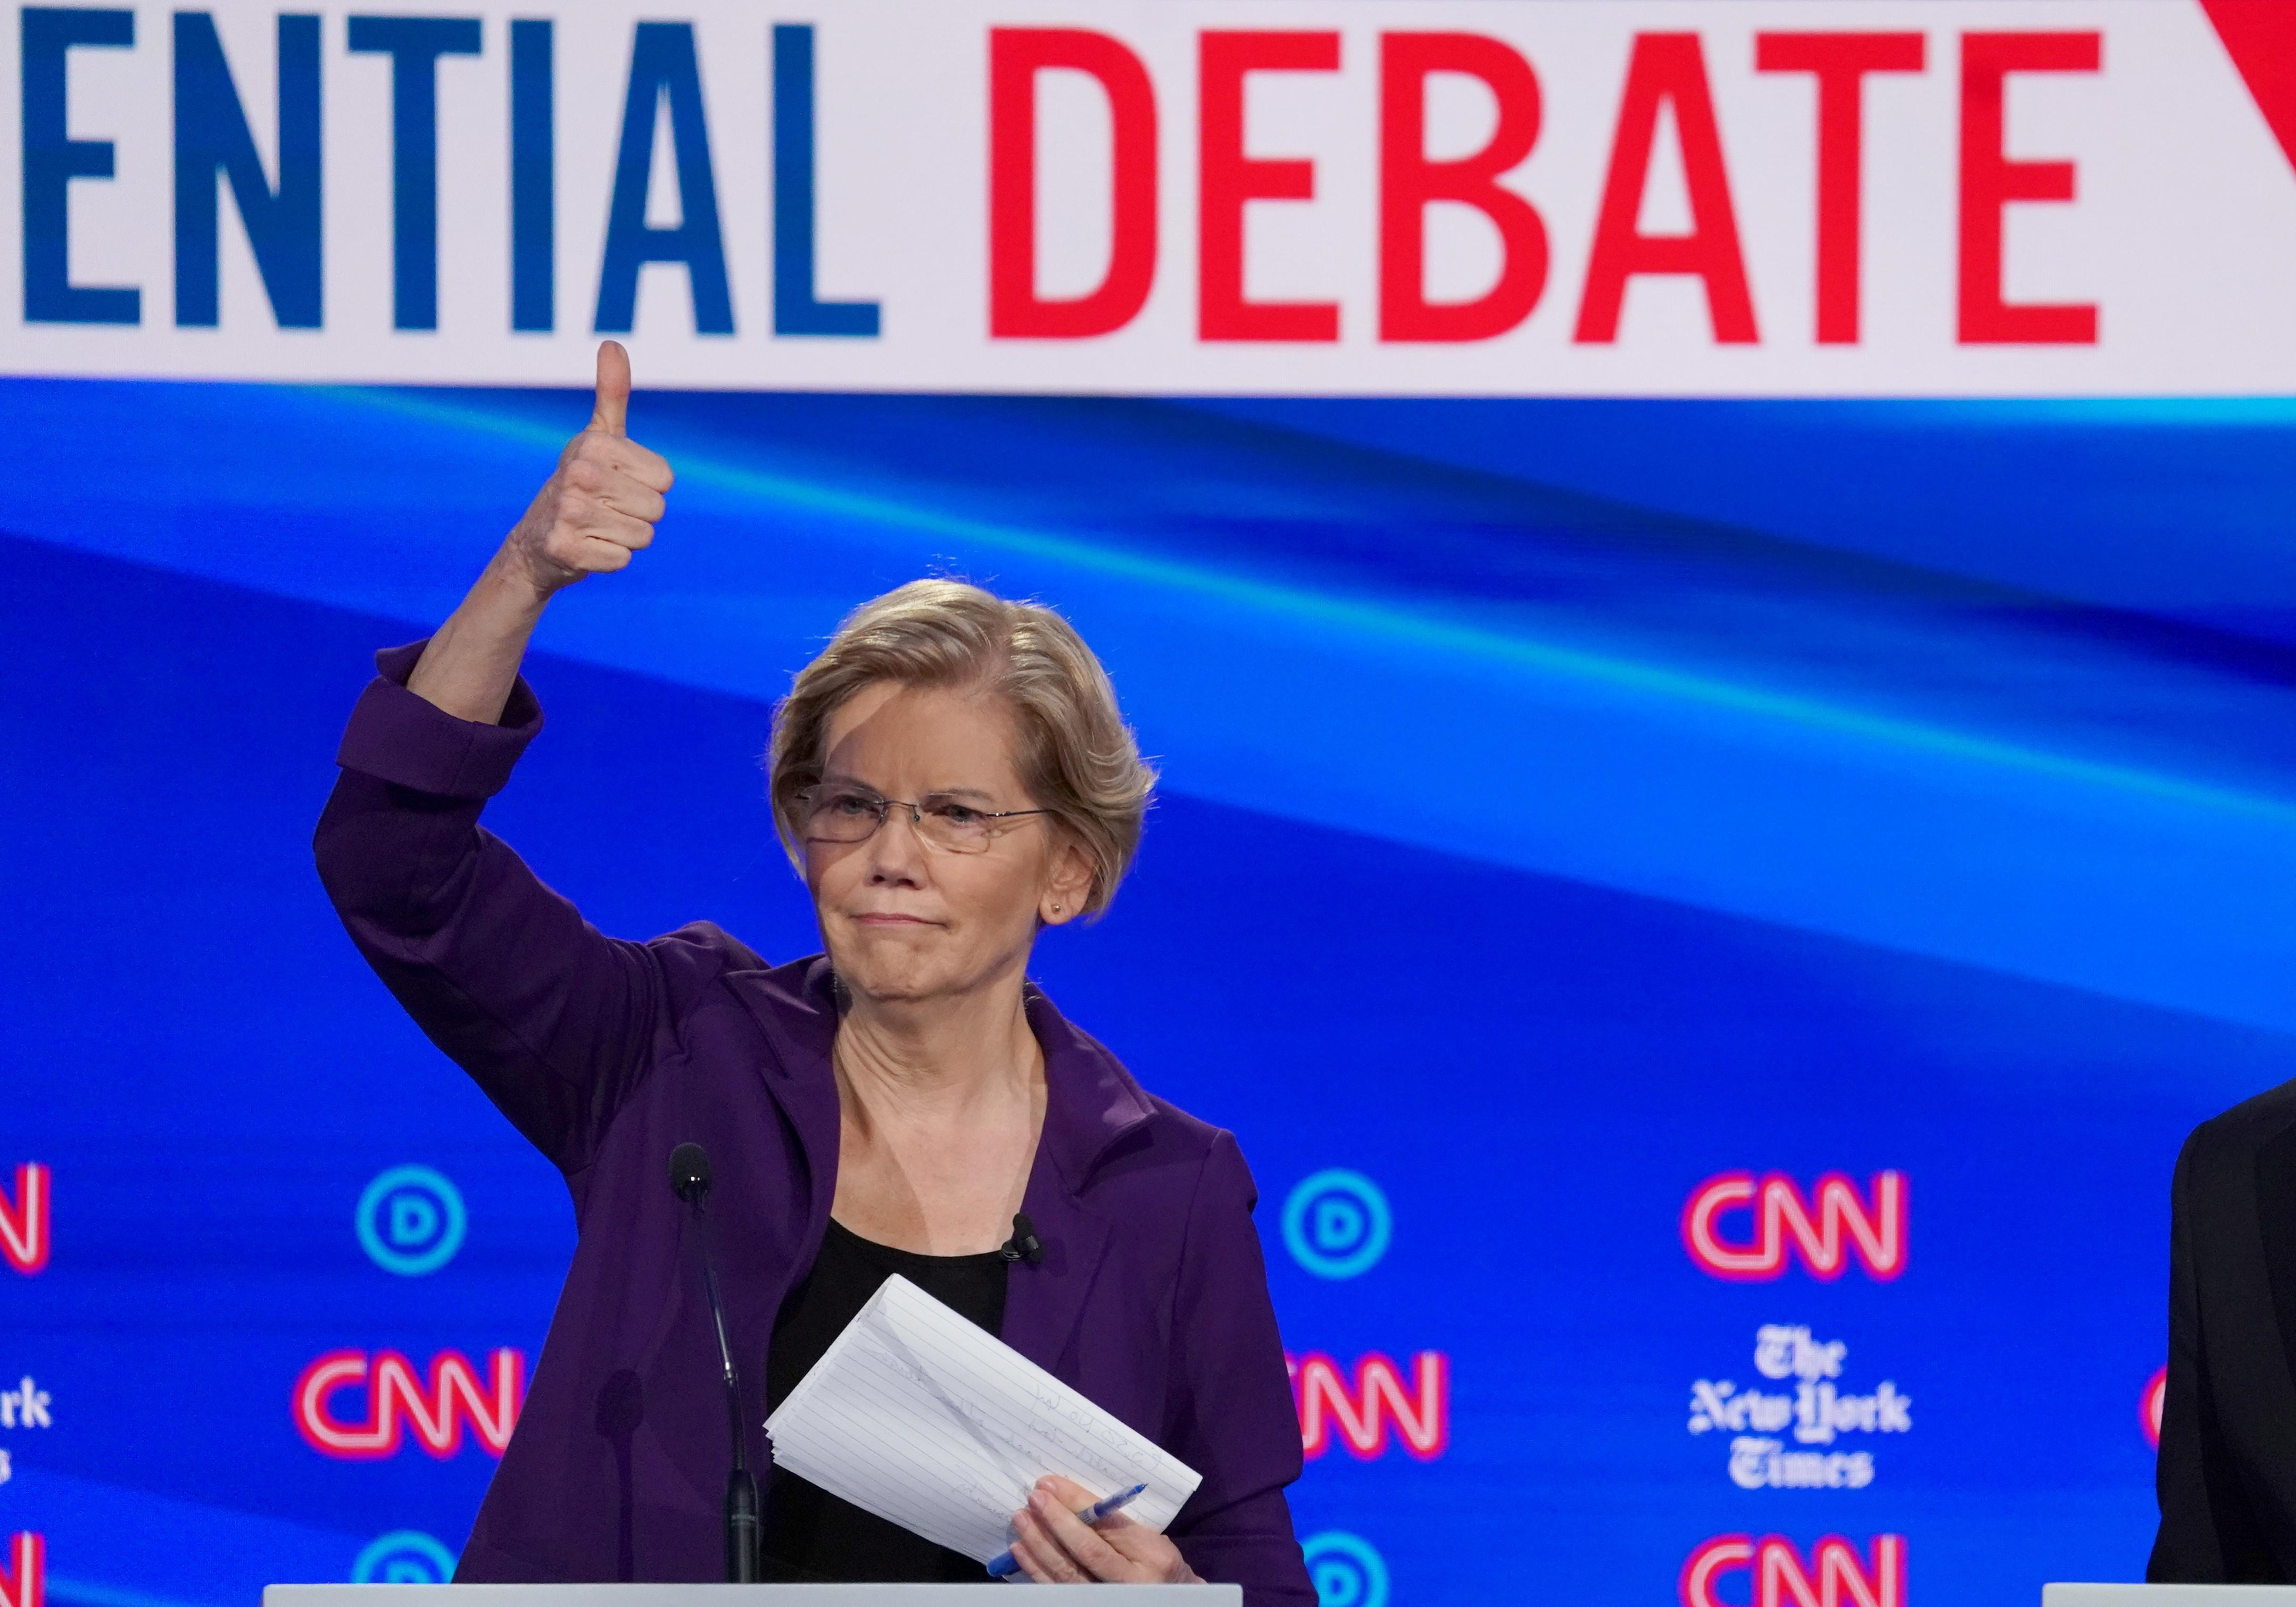 Most 2020 candidates don't have a plan to make Social Security 'sustainably solvent' and people are noticing